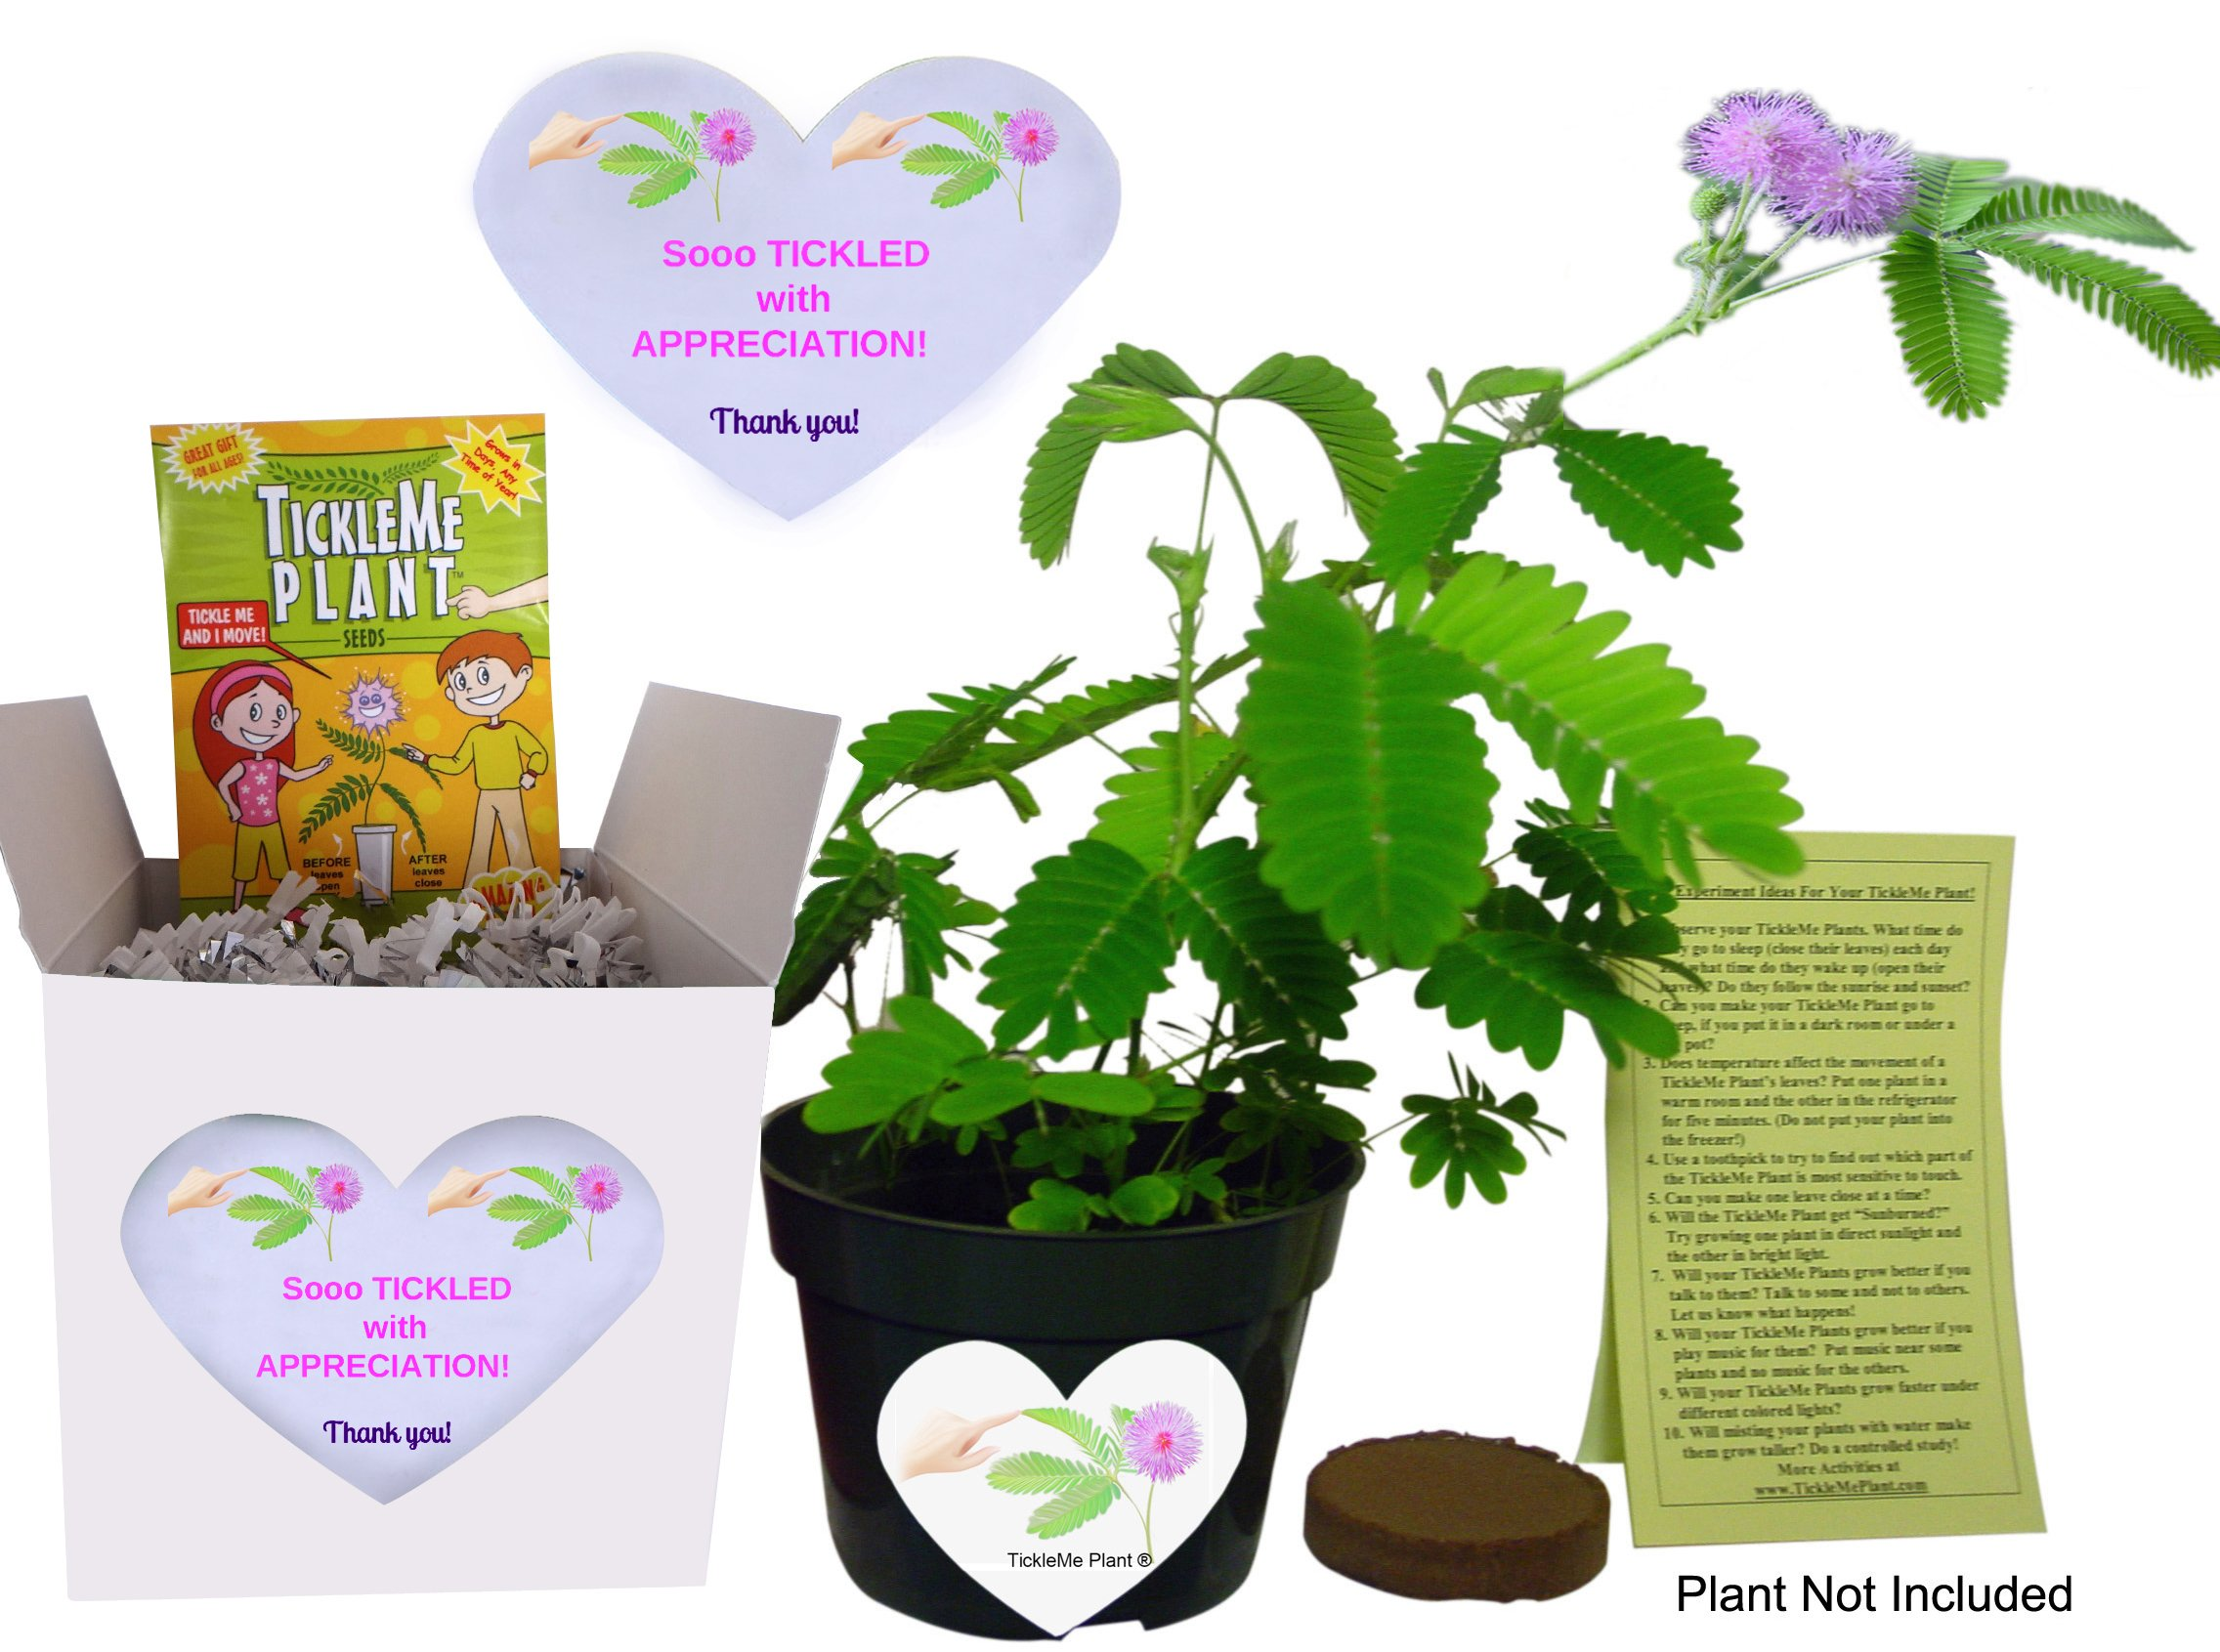 TickleMe Plant Fun Alternative to a THANK YOU Card. So Tickled APPRECIATION Gift Box - Grow the House Plant that Closes Its leaves lowers ts branches when you TICKLE it everyone SMILES!